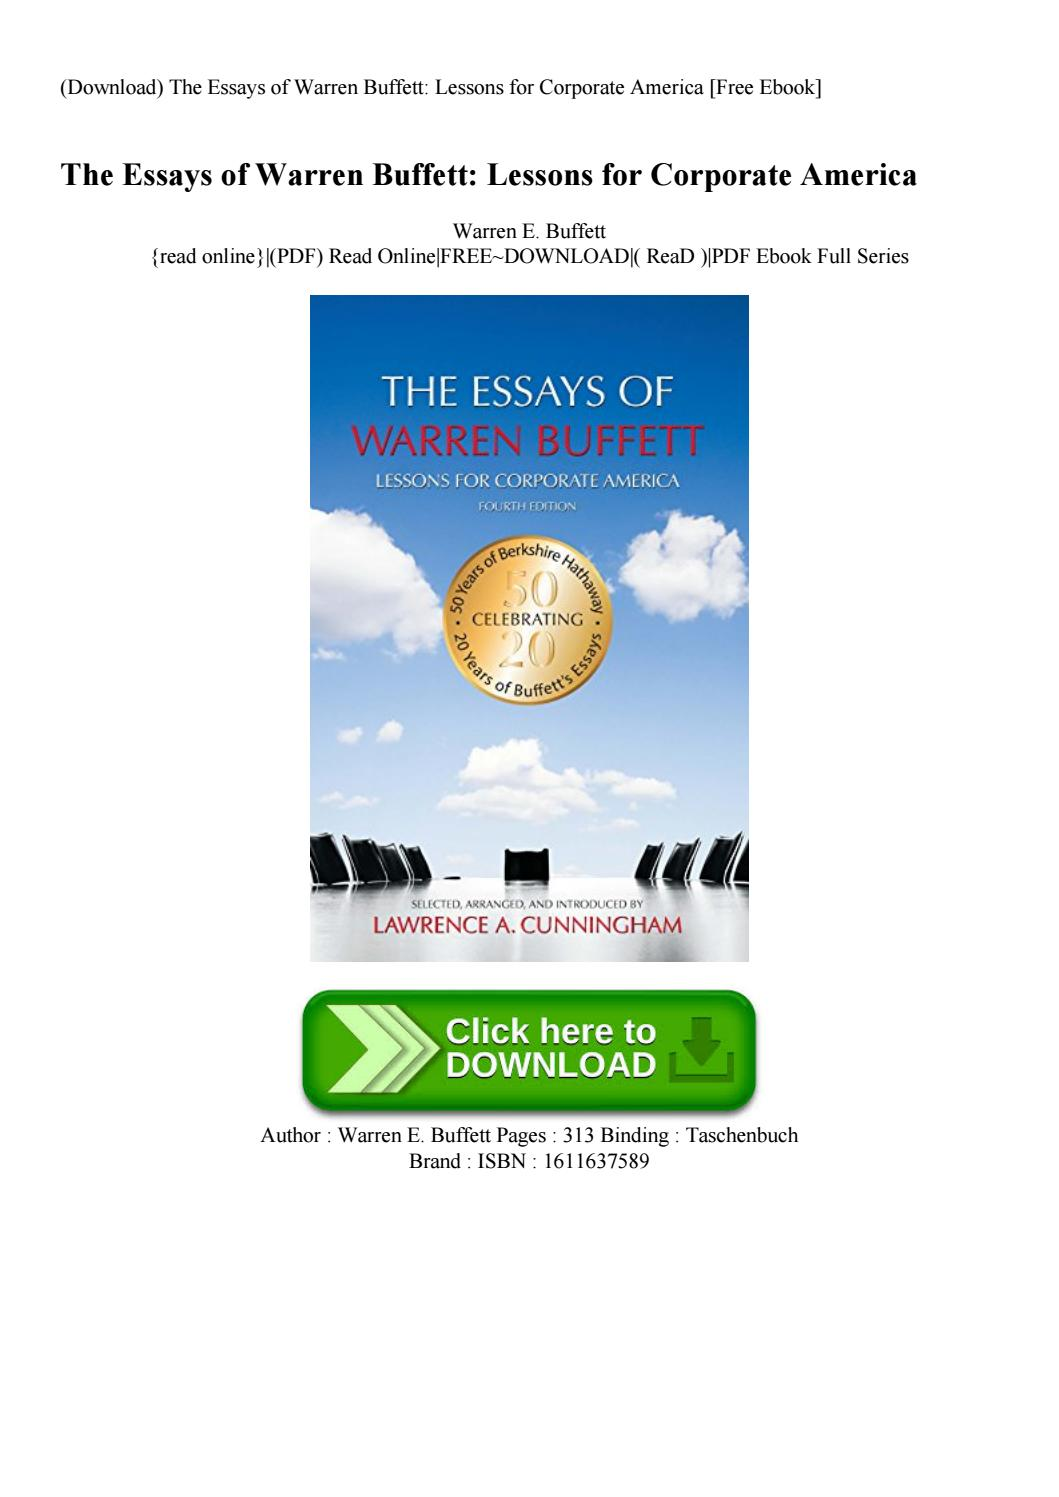 011 Essay Example Page 1 The Essays Of Warren Buffett Lessons For Corporate Remarkable America Third Edition 3rd Second Pdf Audio Book Full